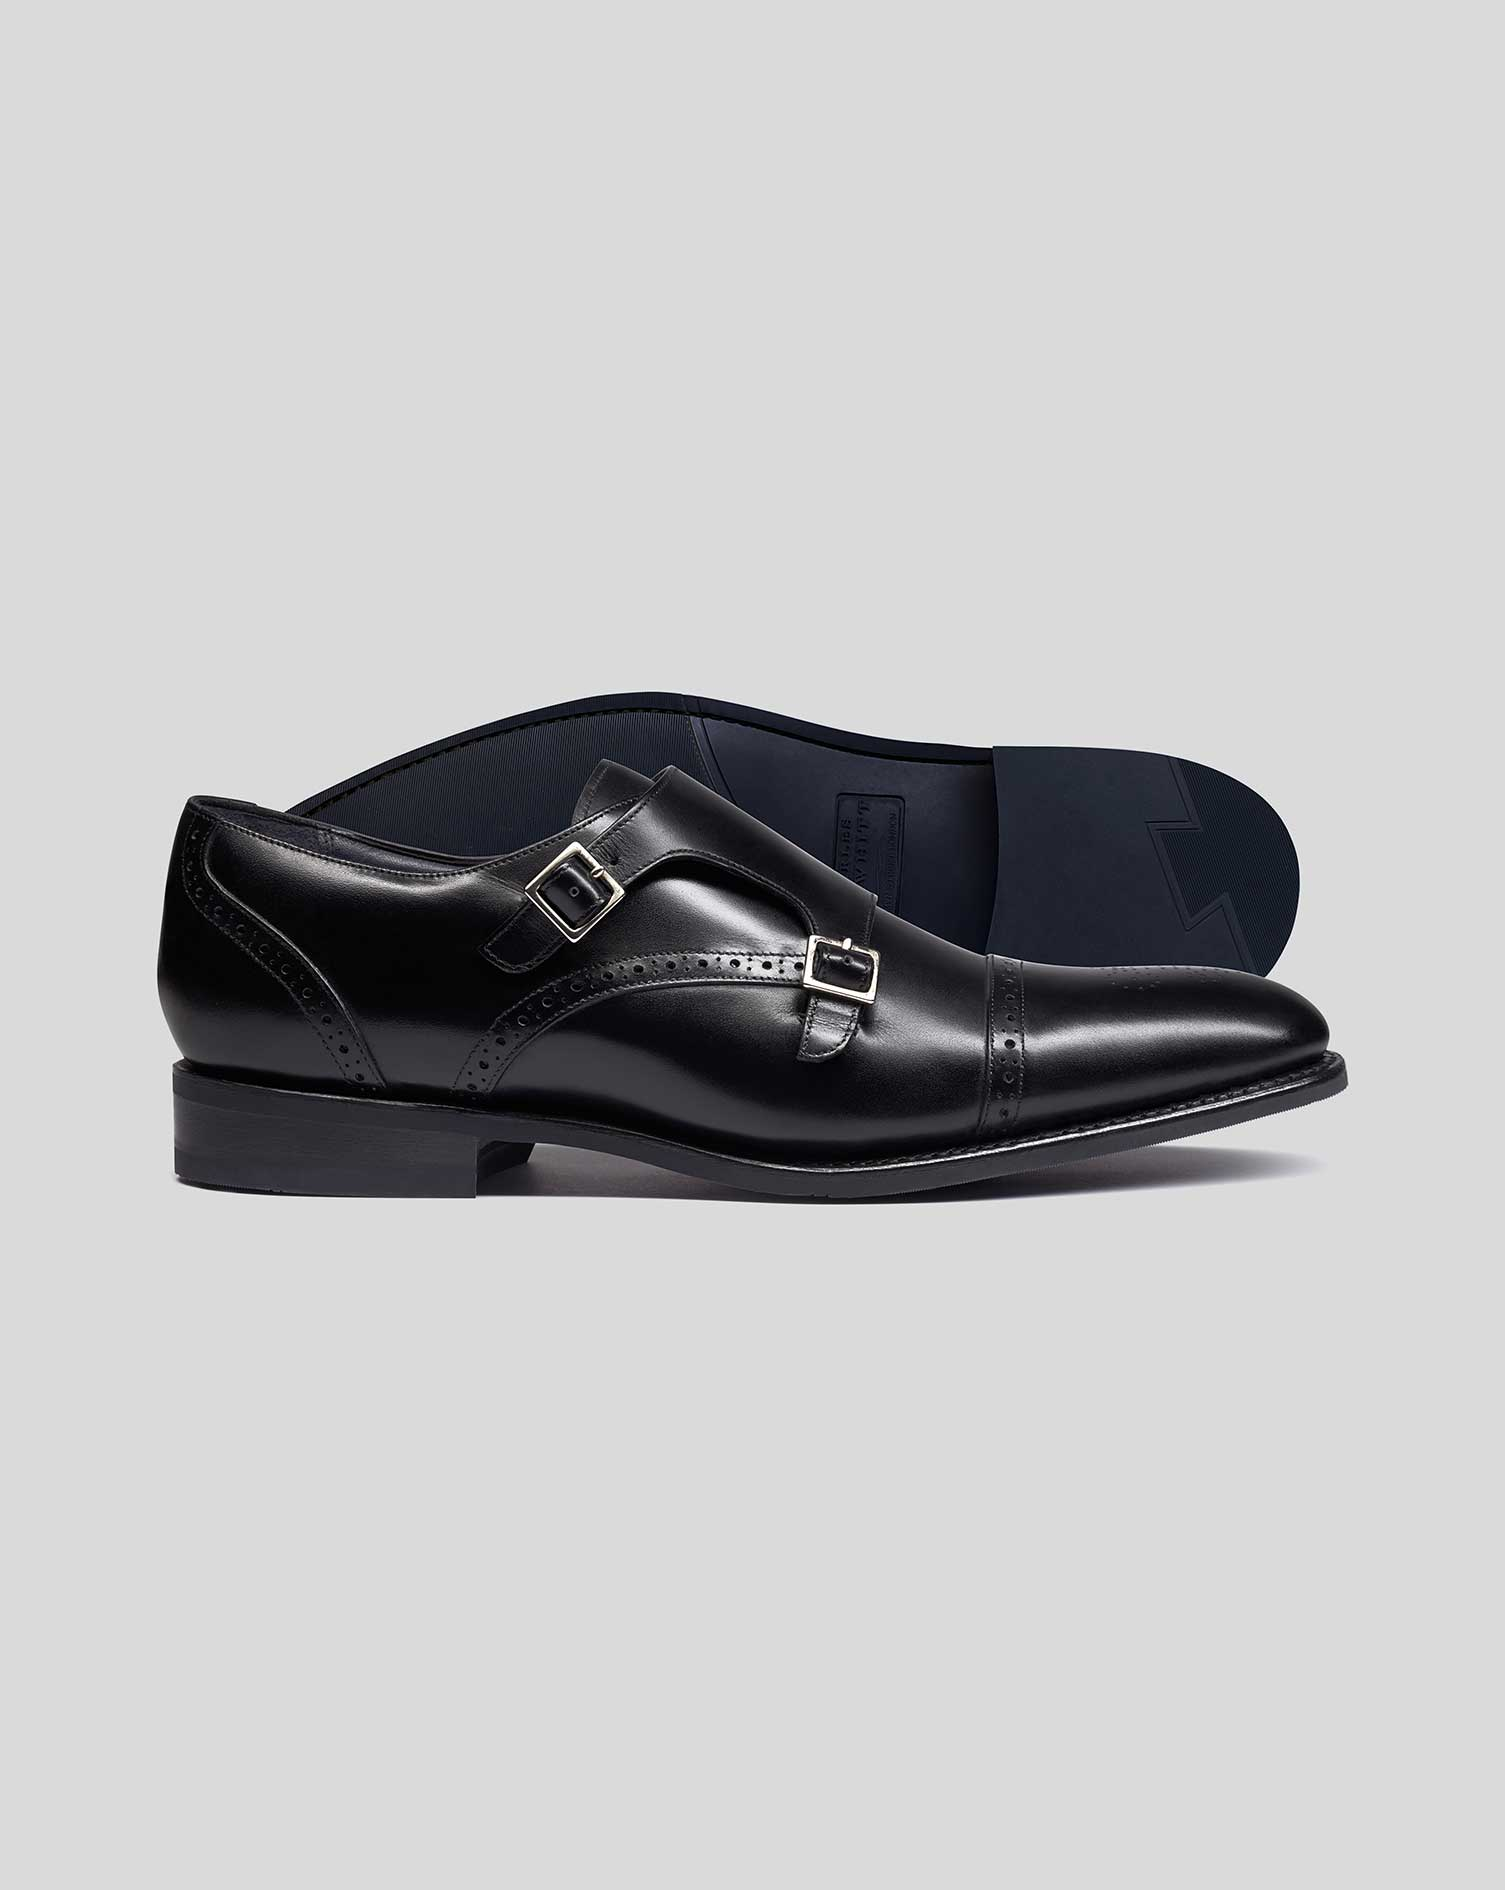 Leather Black Goodyear Welted Double Buckle Monk Performance Shoes